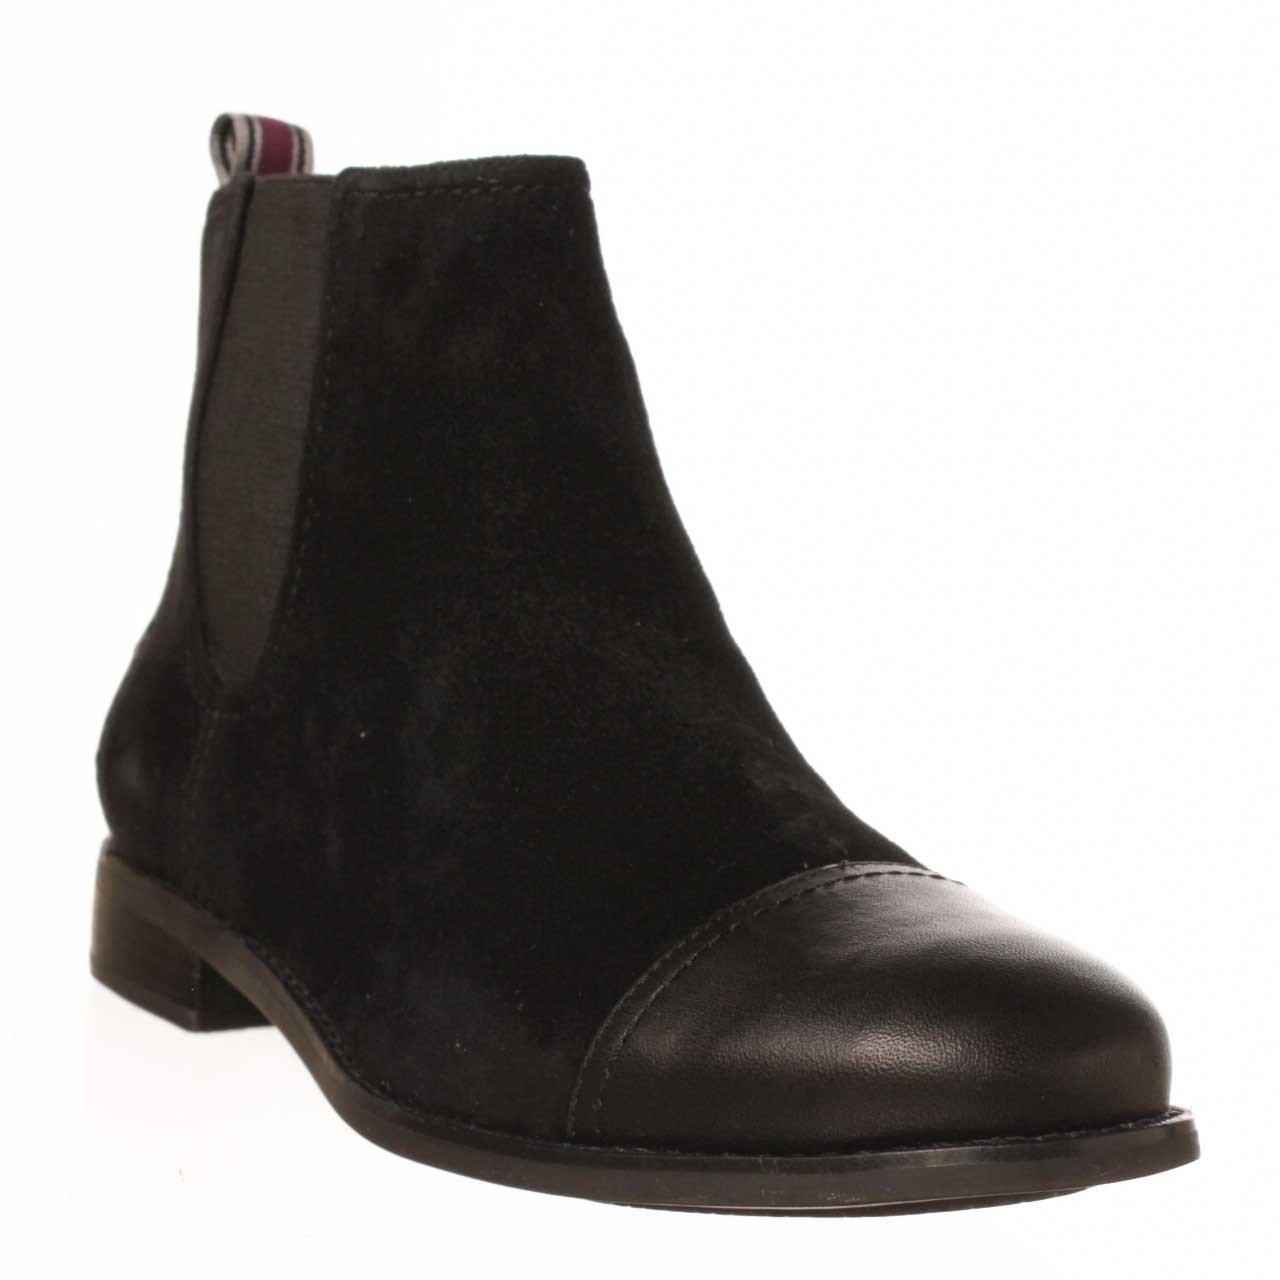 sperry top sider ainslie ankle boot in black lyst